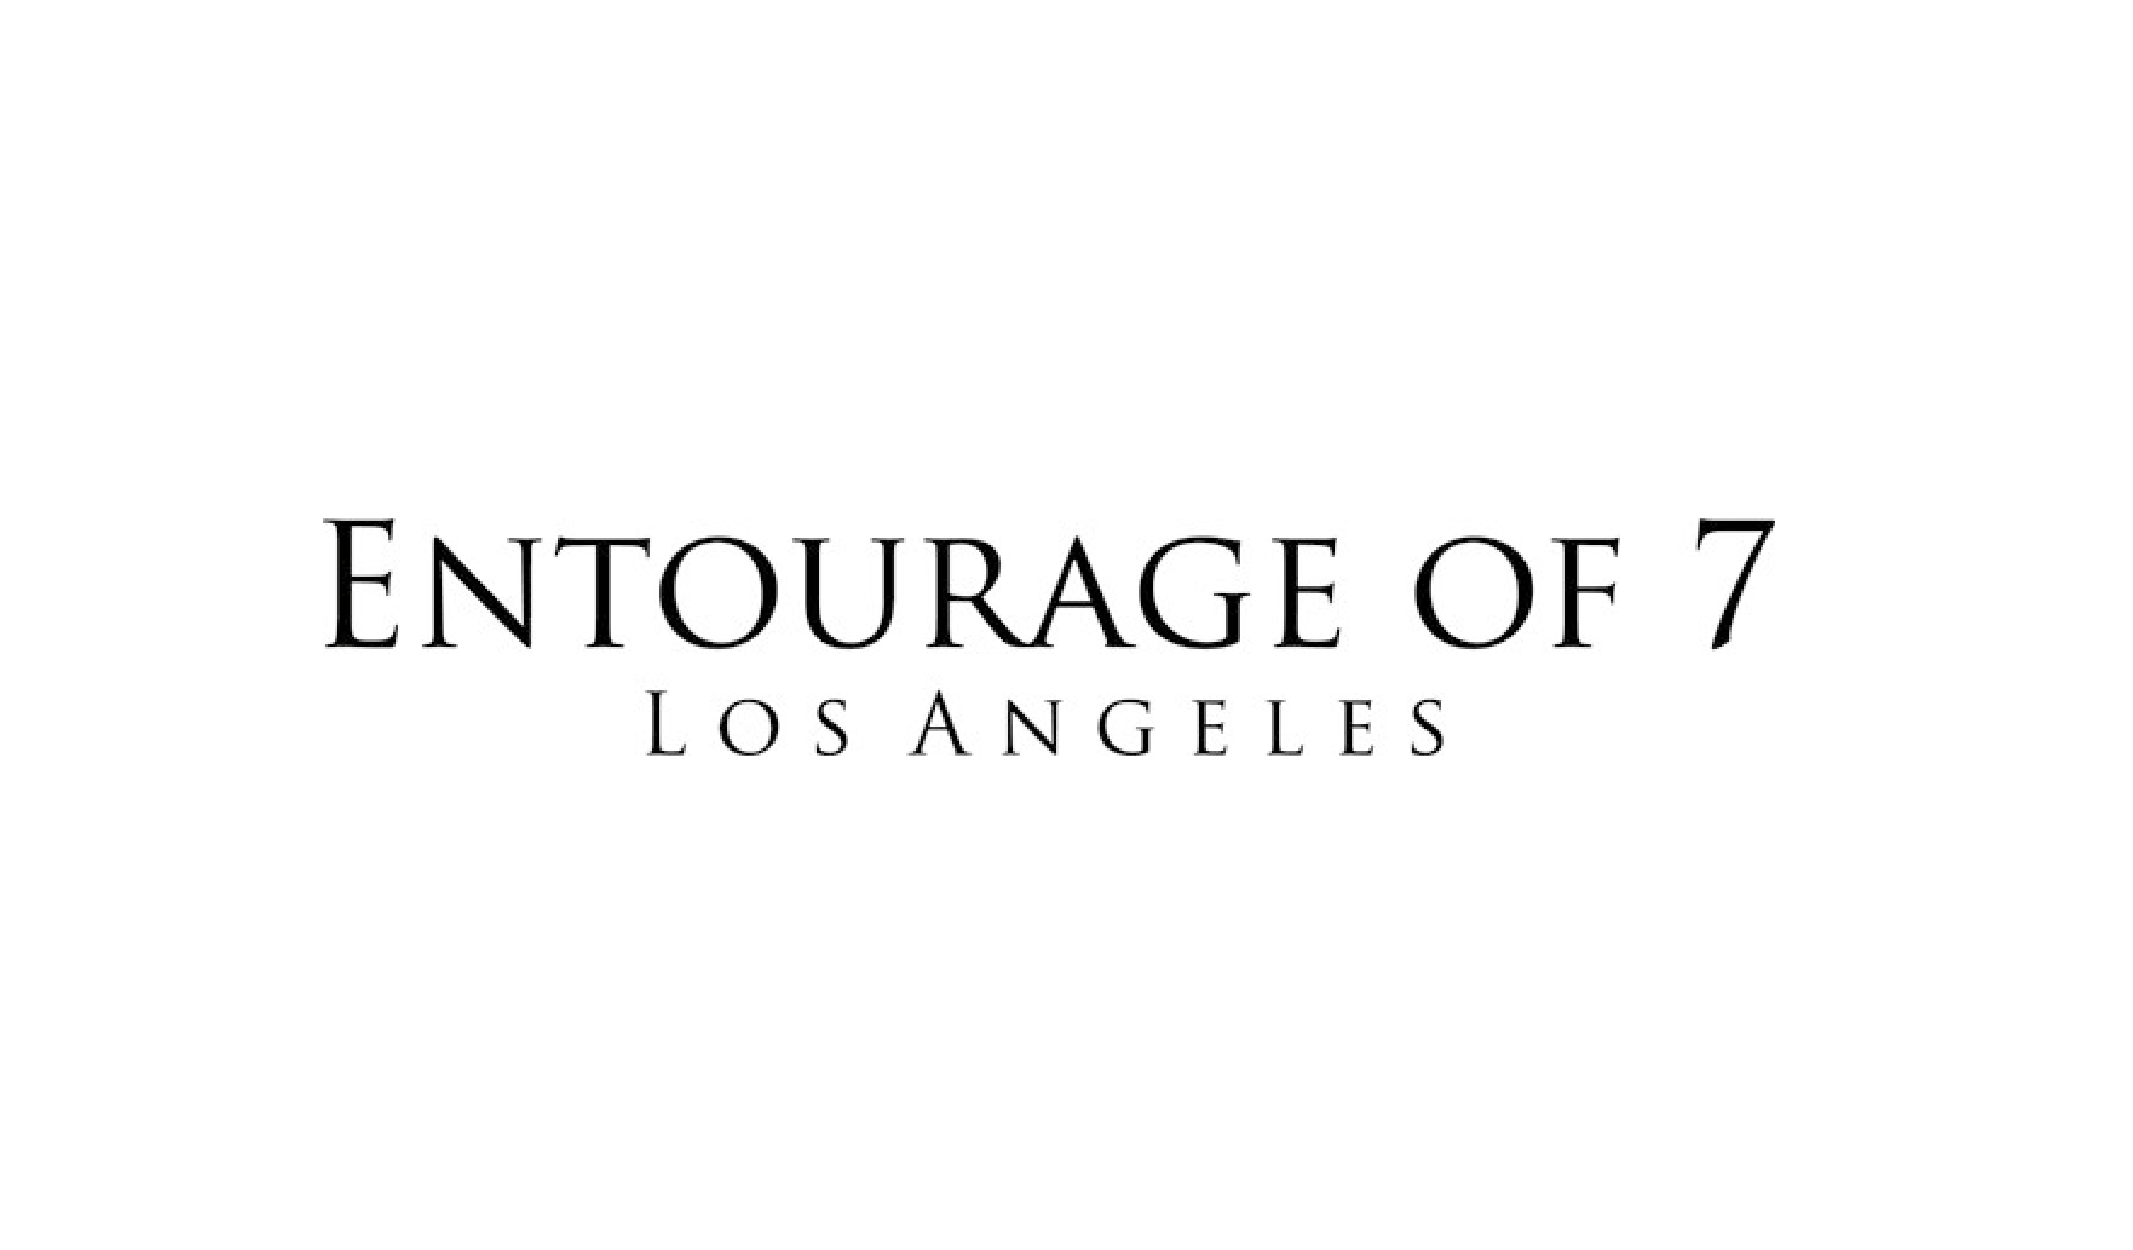 Entourage of Los Angeles